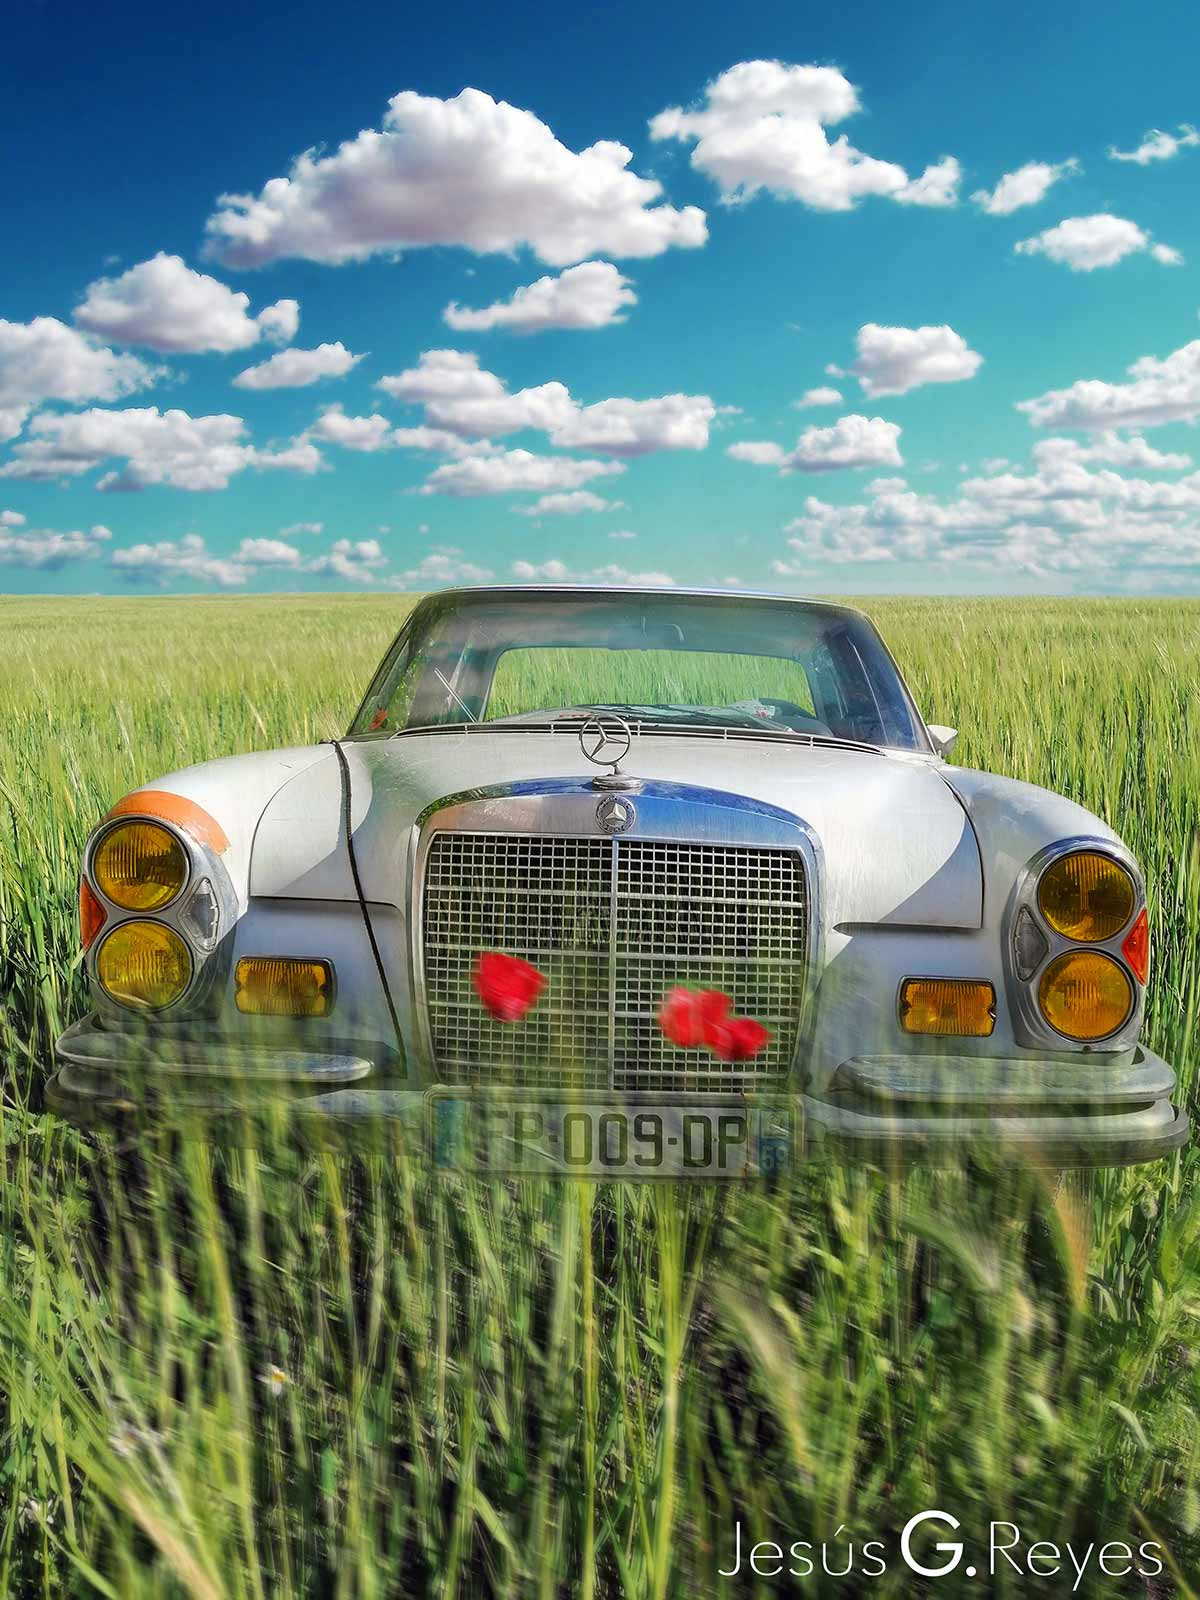 Agriculture photomontage